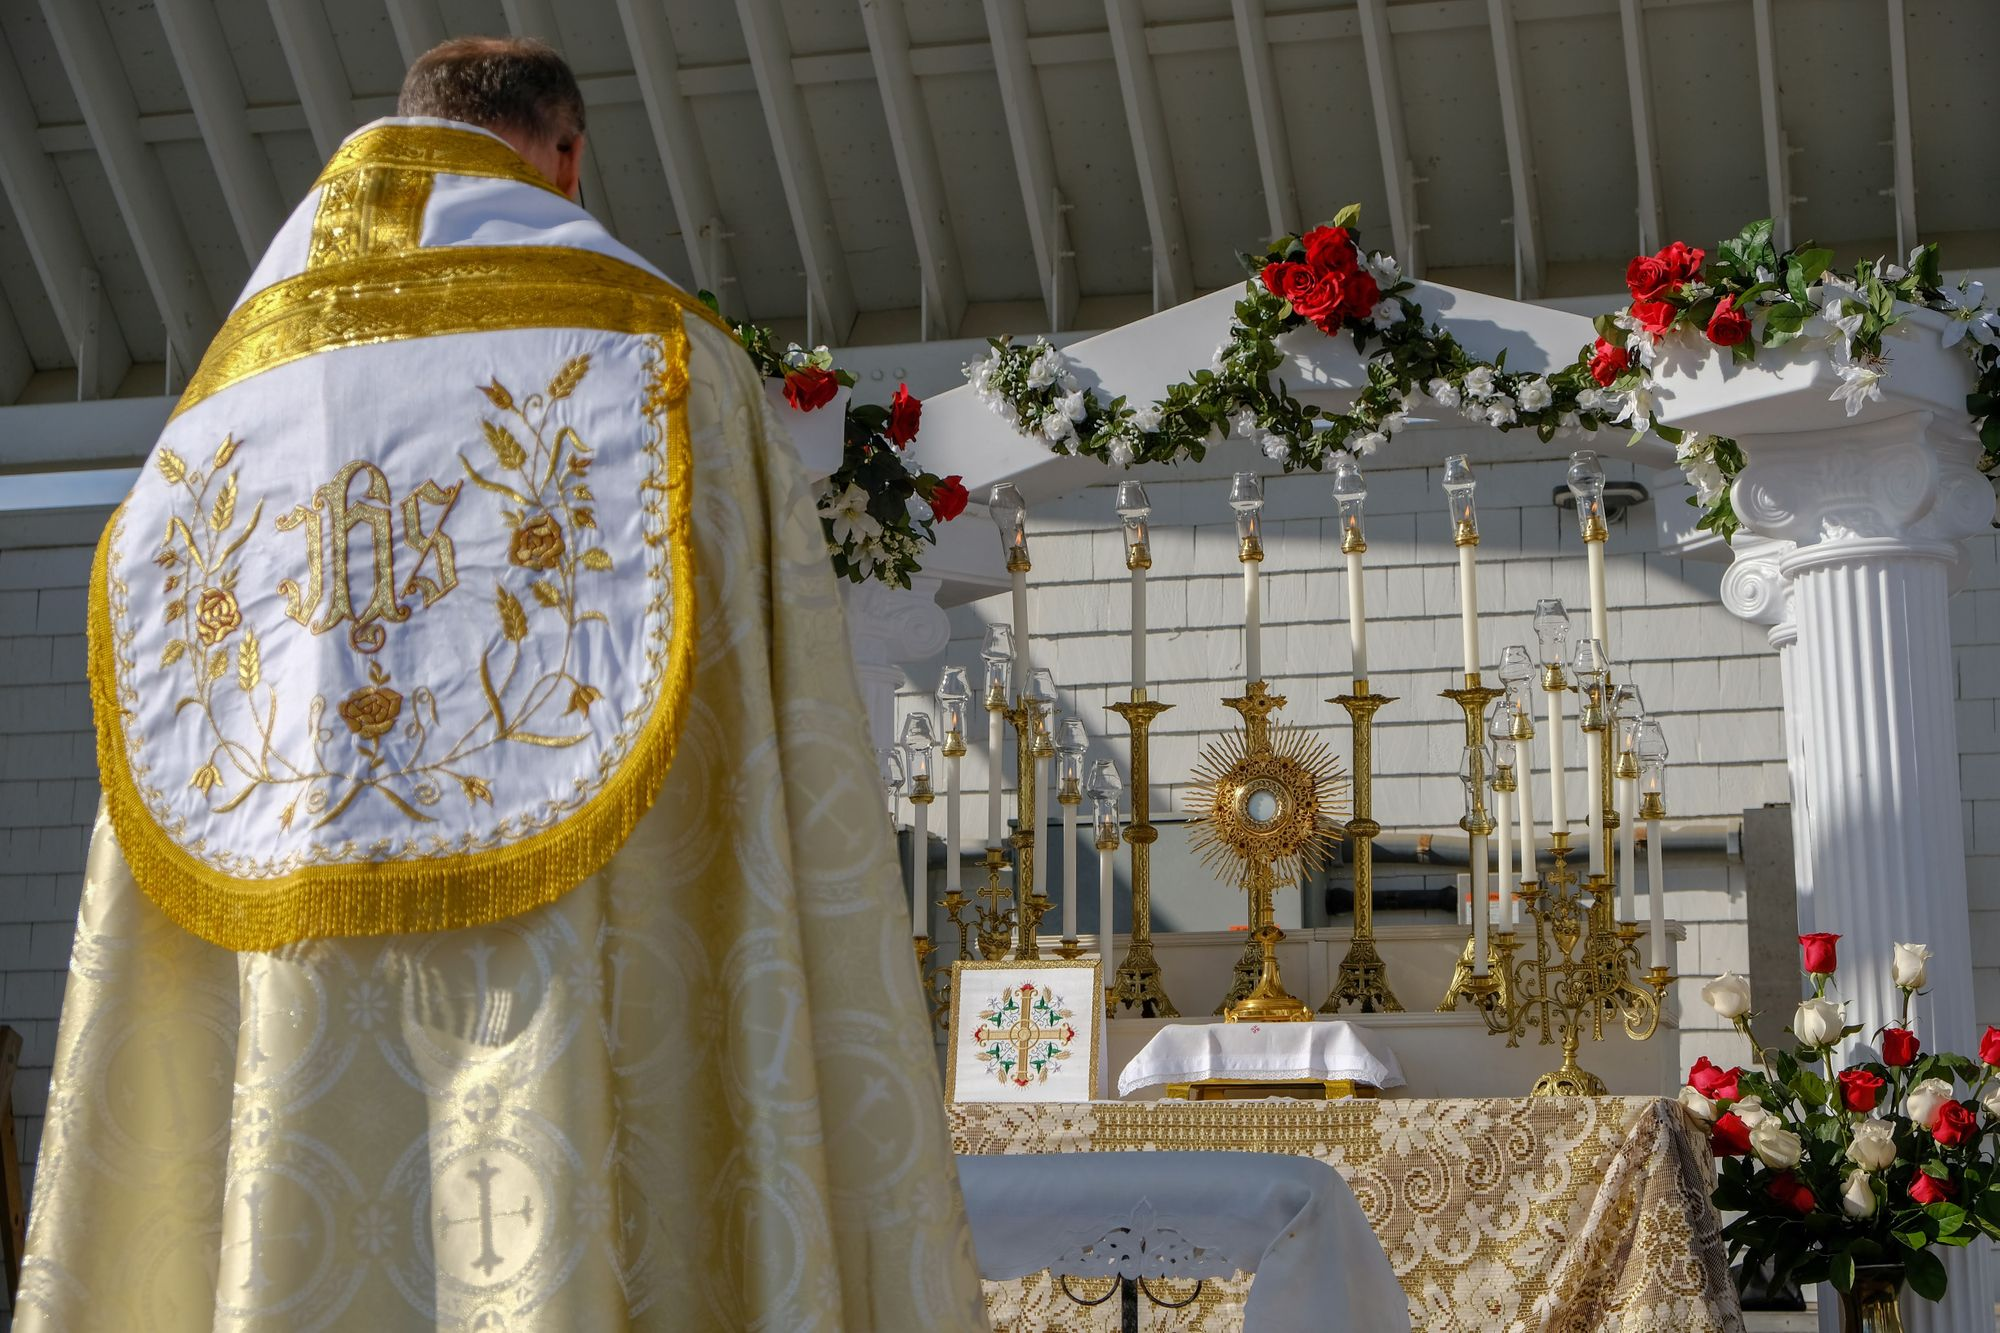 priest-altar-and-monstrance-from-sdcason-dot-com